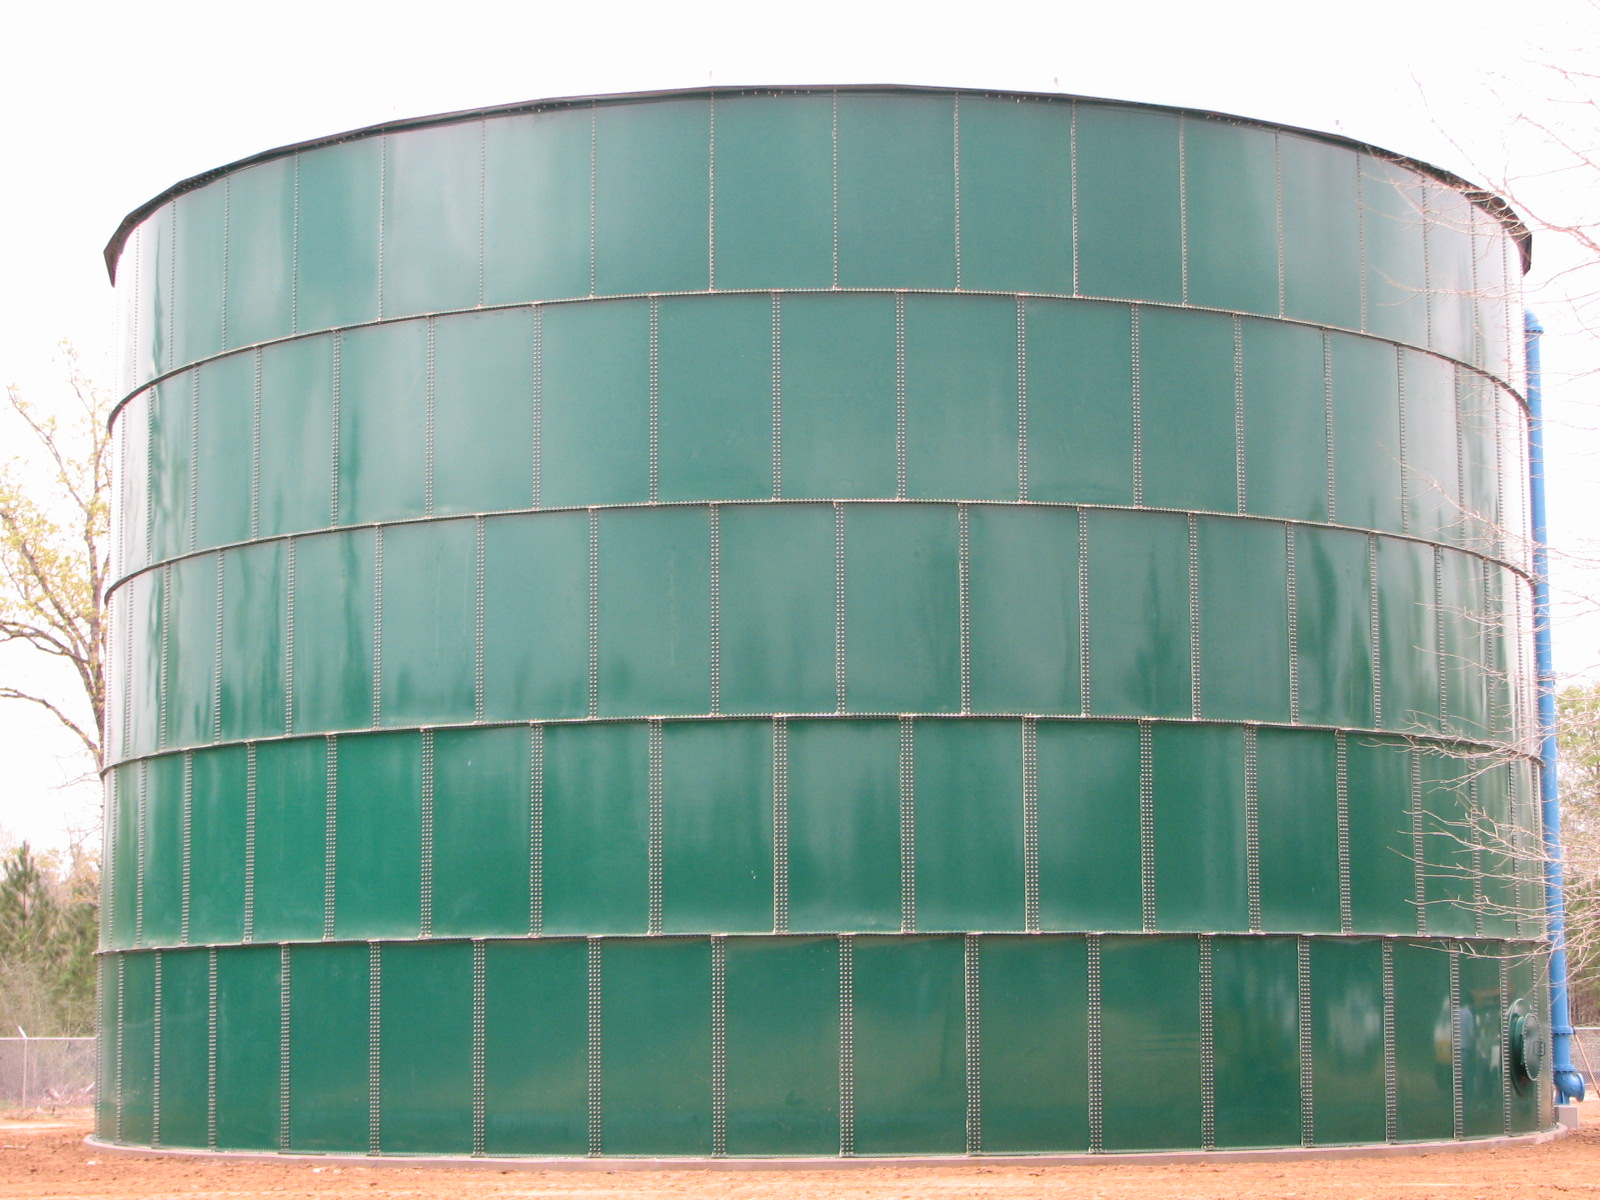 Bolted Steel Storage Tank & Superior Tank Co. Inc. - Bolted Steel Storage Tank Image | ProView